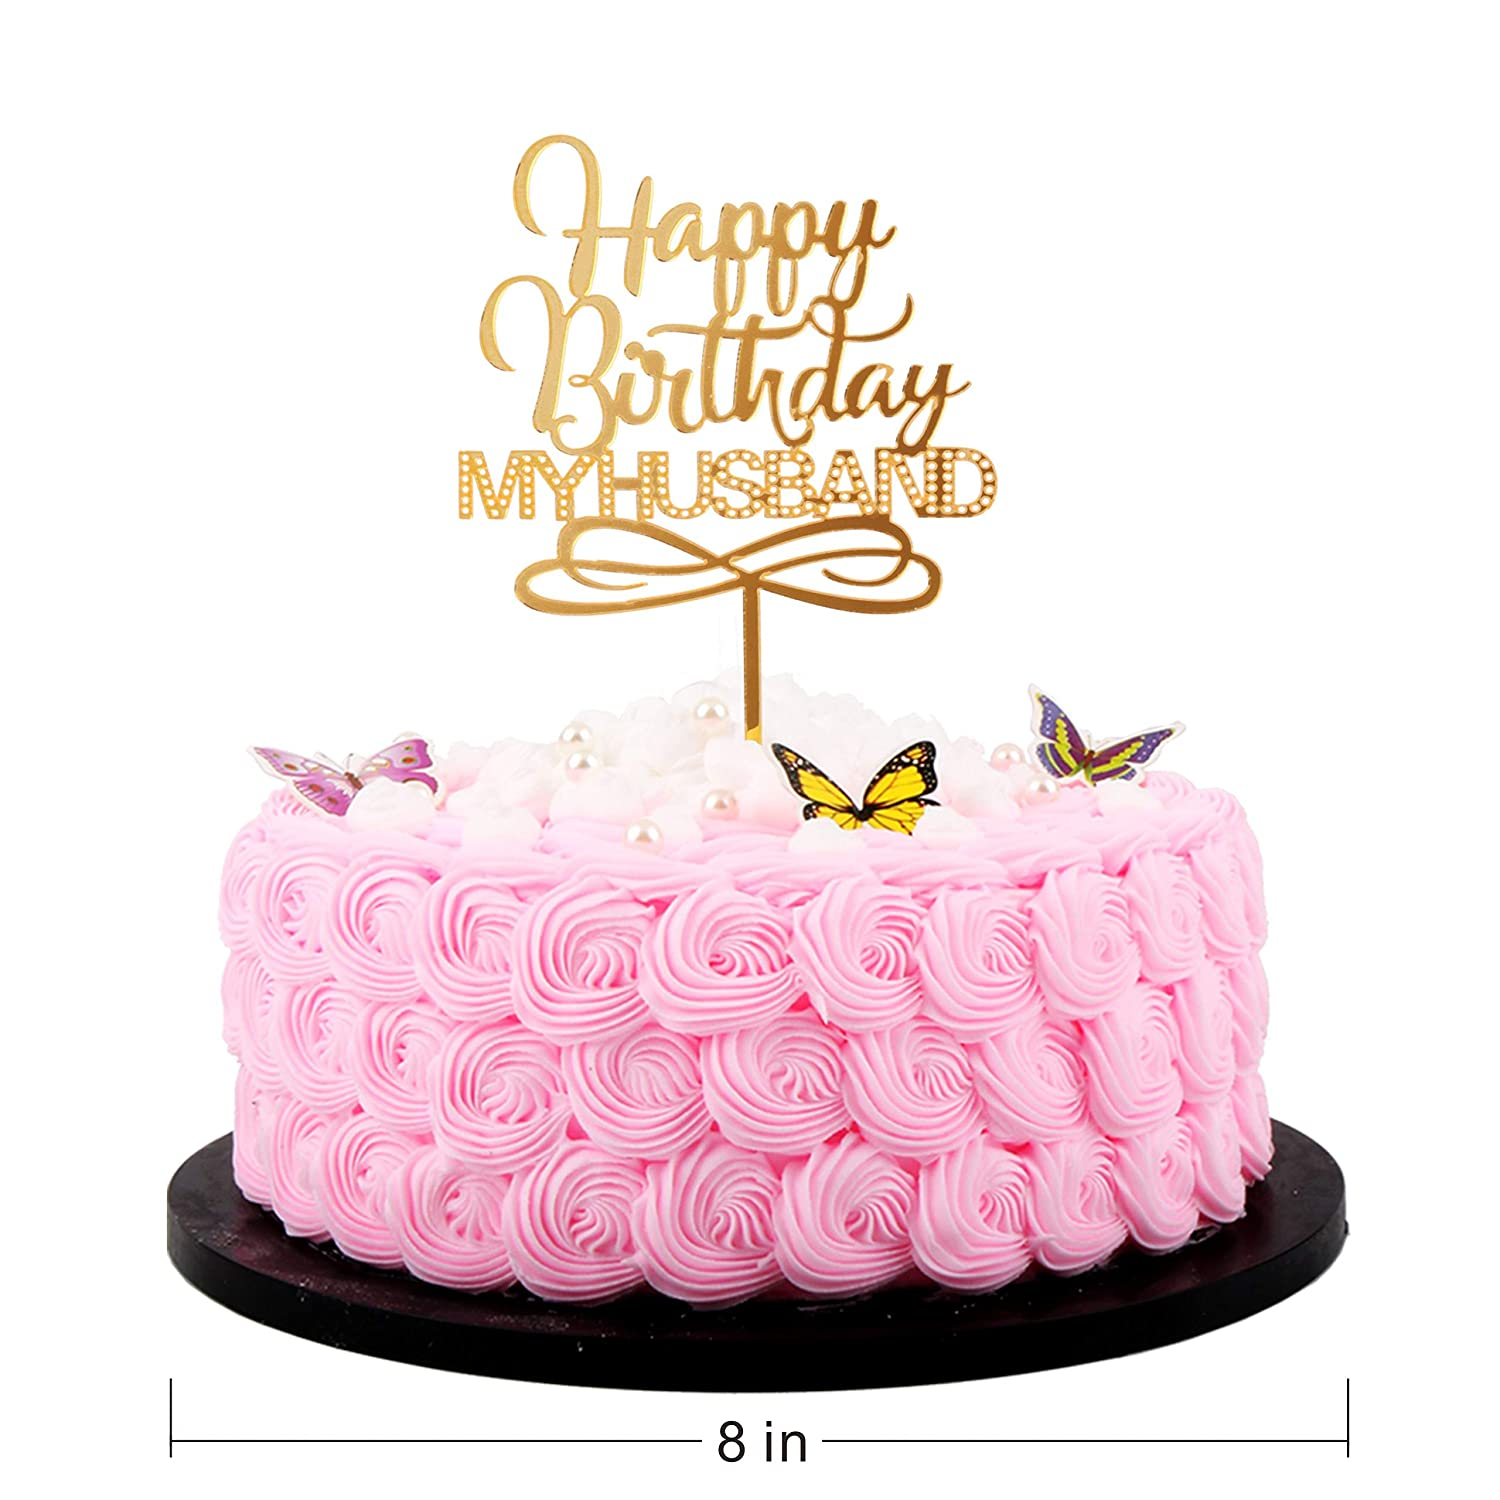 Remarkable Artczlay Happy Birthday Cake Topper Husband Happy Birthday Cake Personalised Birthday Cards Paralily Jamesorg